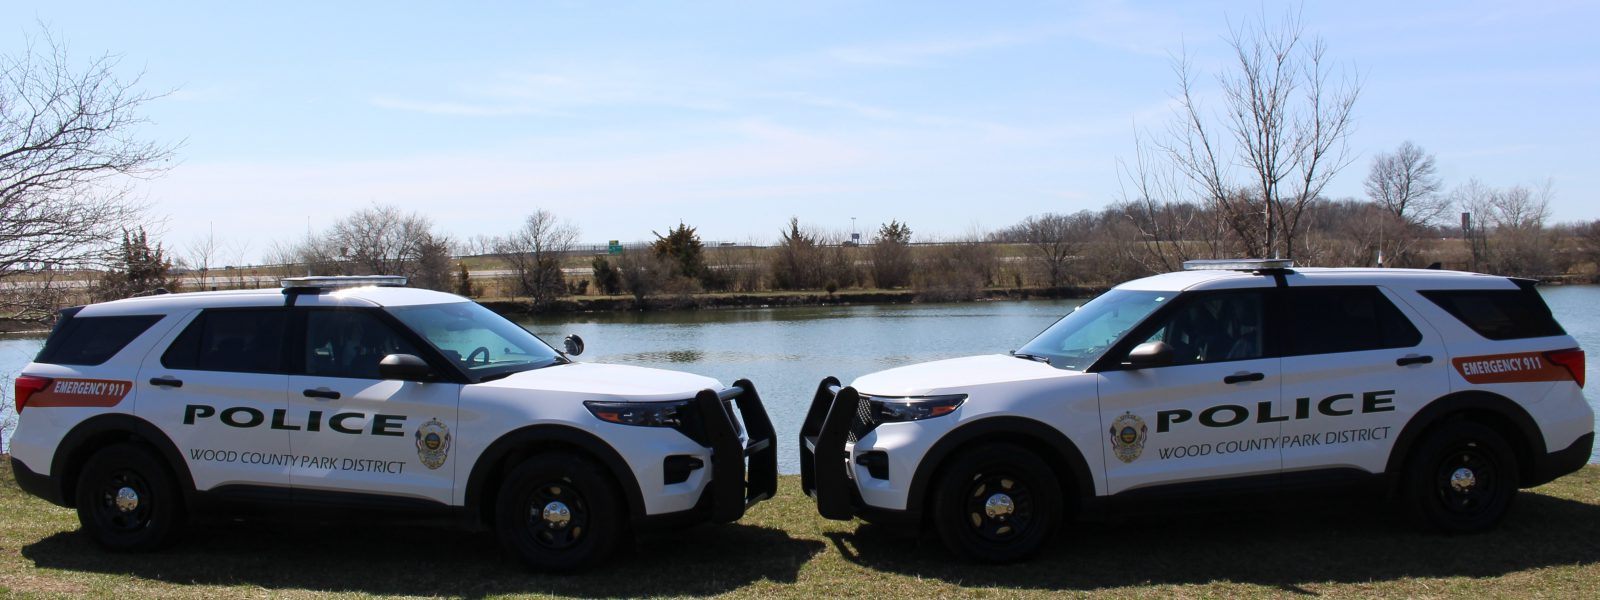 Two Park Police Vehicles